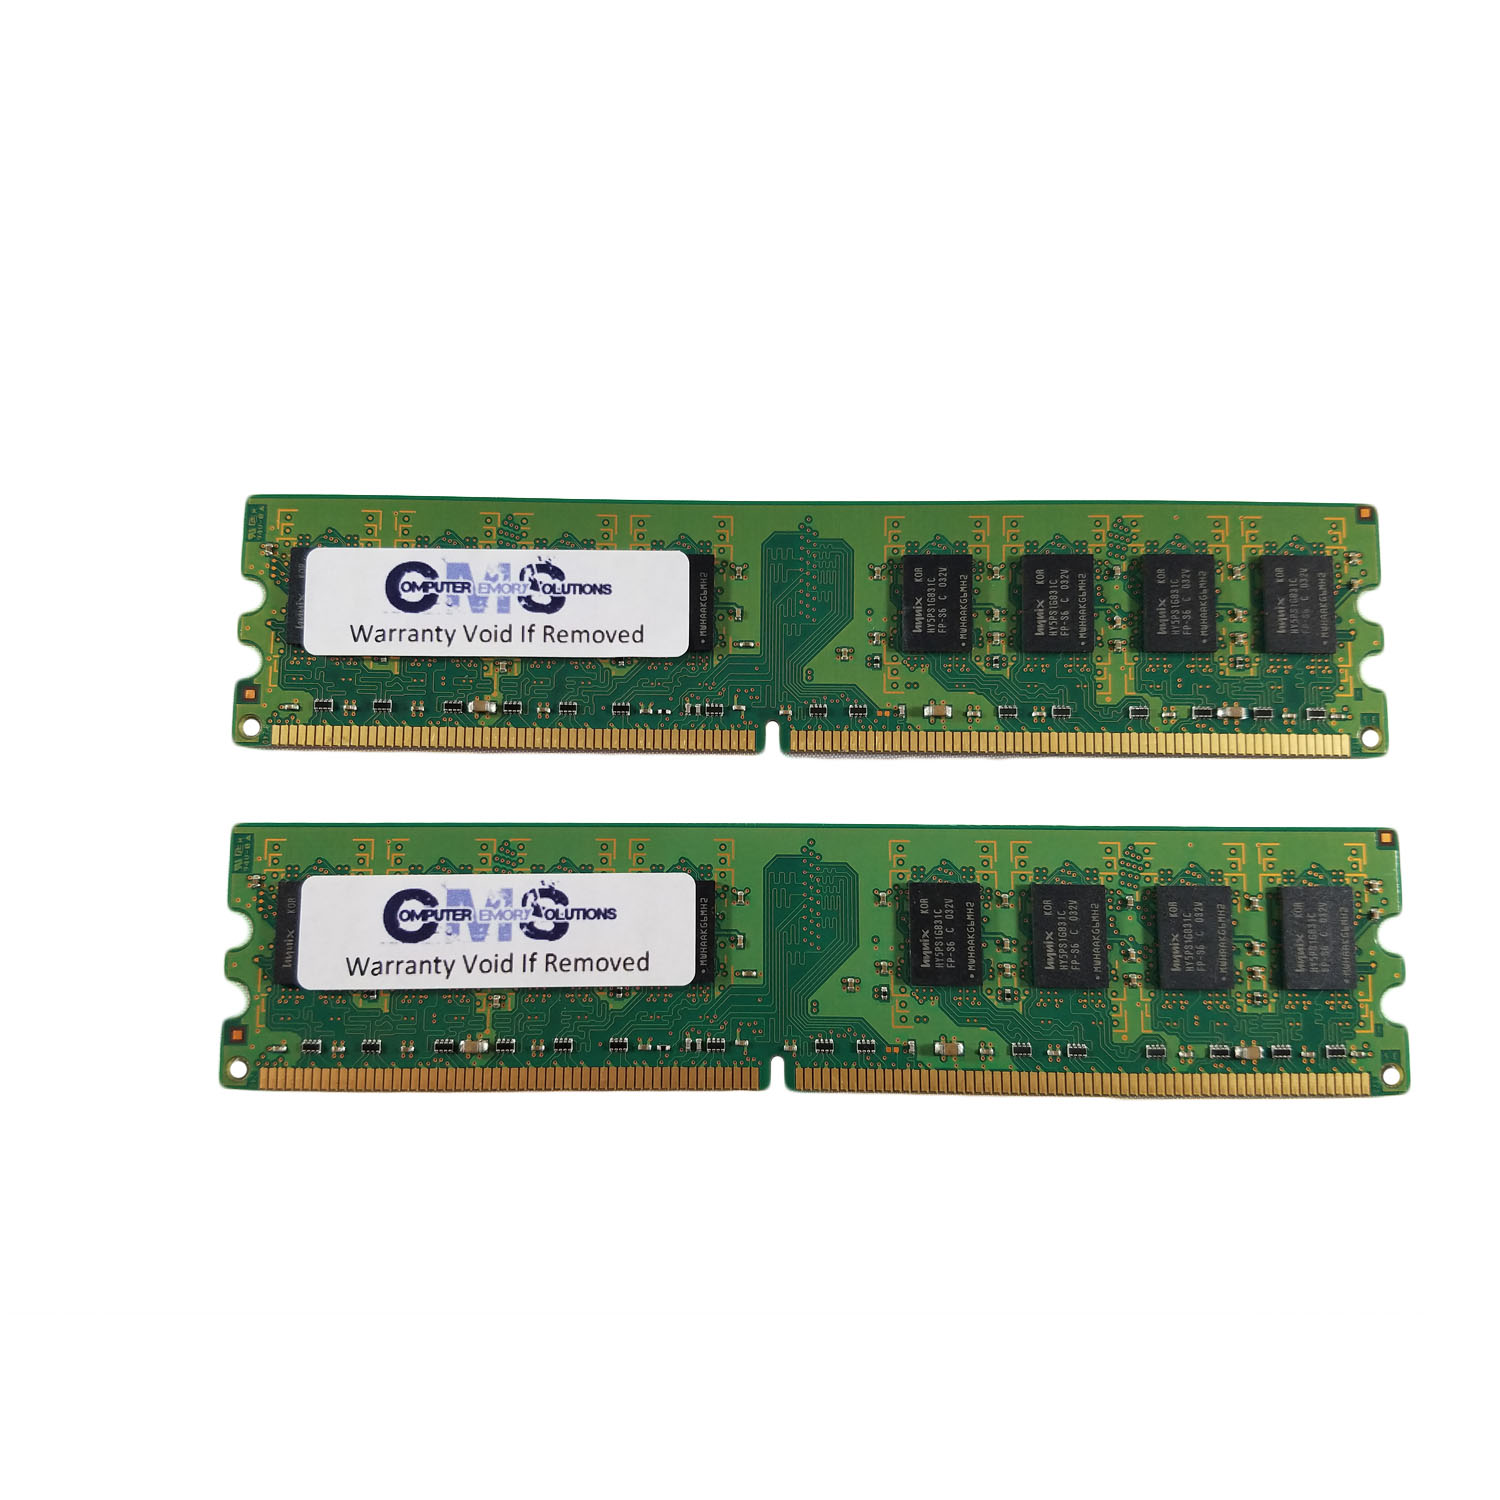 2Gb (1Gb X 2) Memory Ram Dimm Compatible With Dell Inspiron 531, Inspiron 531S By CMS A102